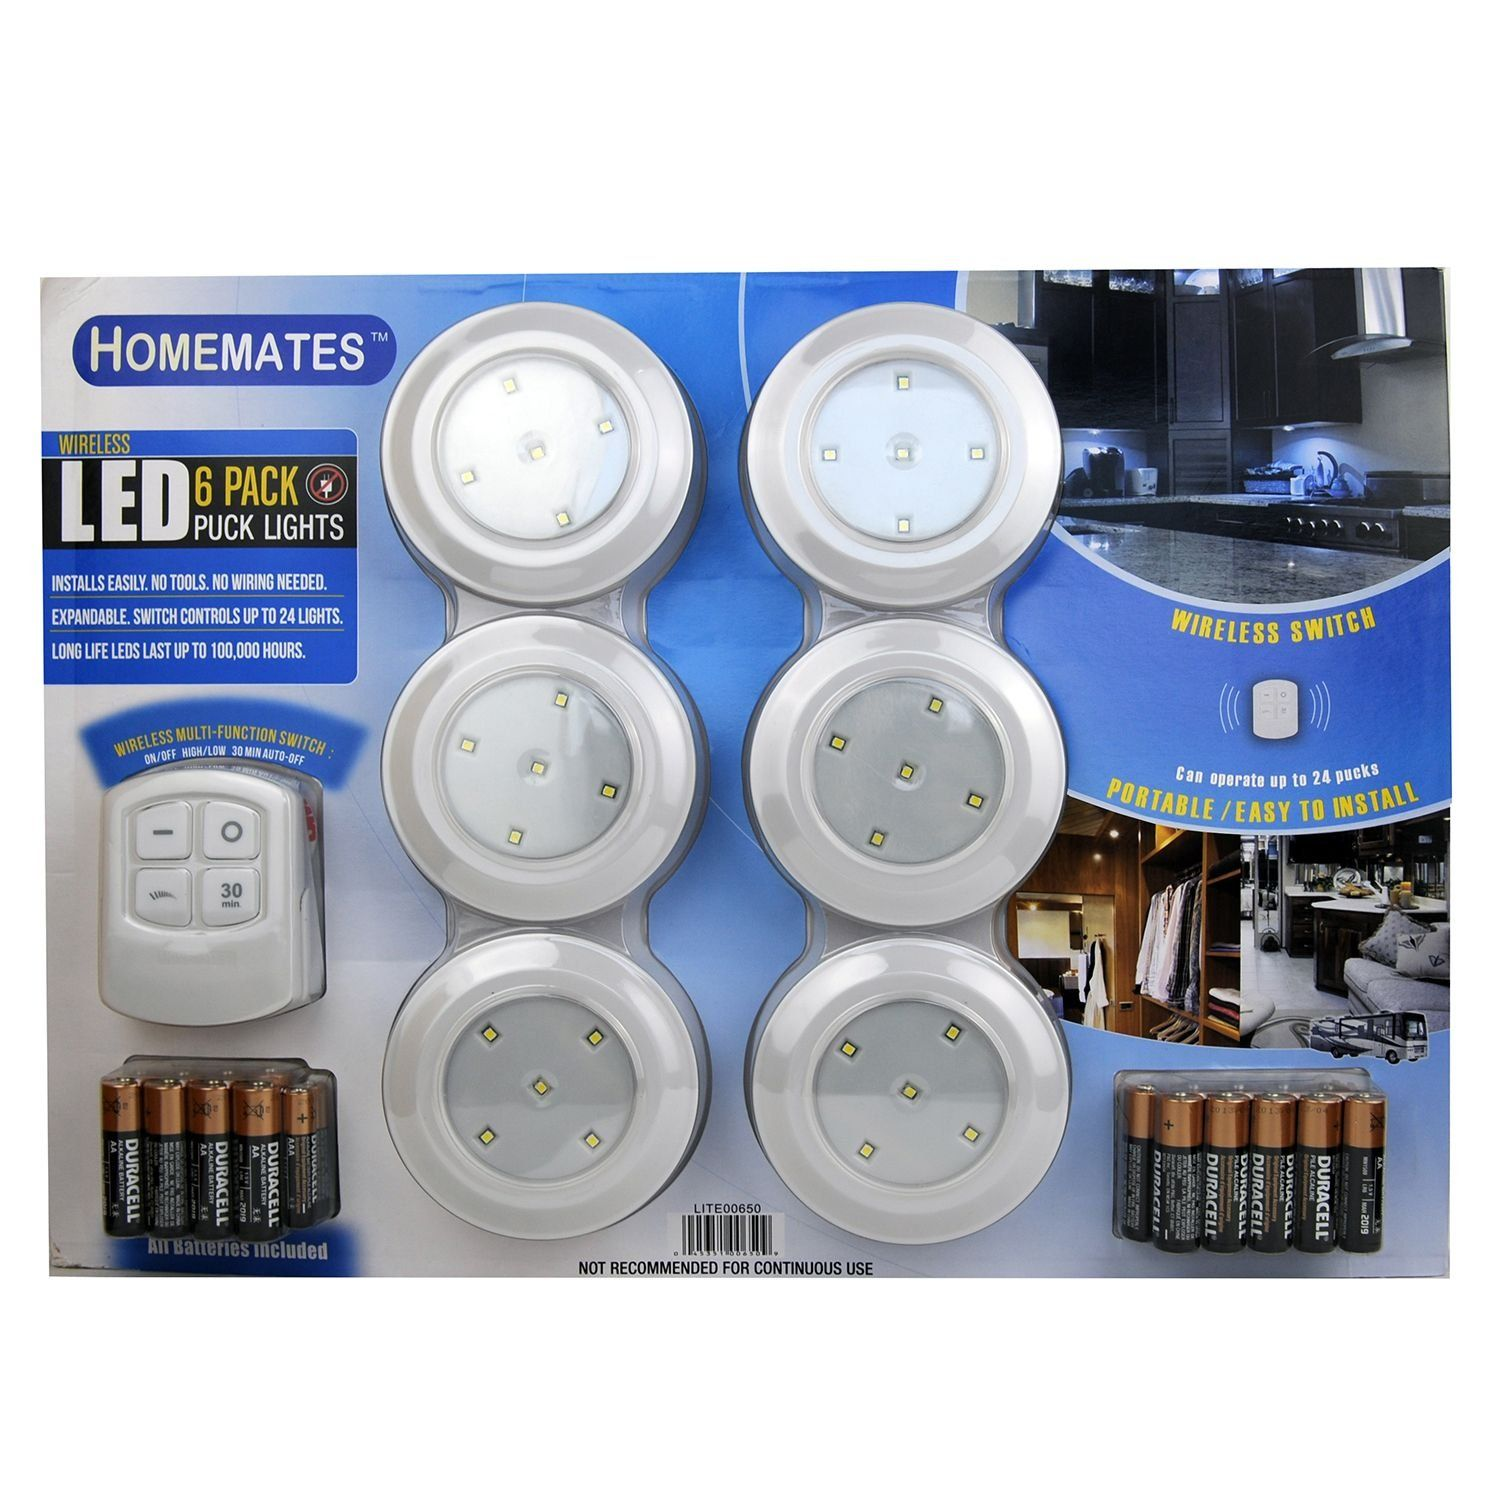 Homemates led wireless puck lights with remote 6 pk battery homemates led wireless puck lights with remote 6 pk battery operated aloadofball Image collections